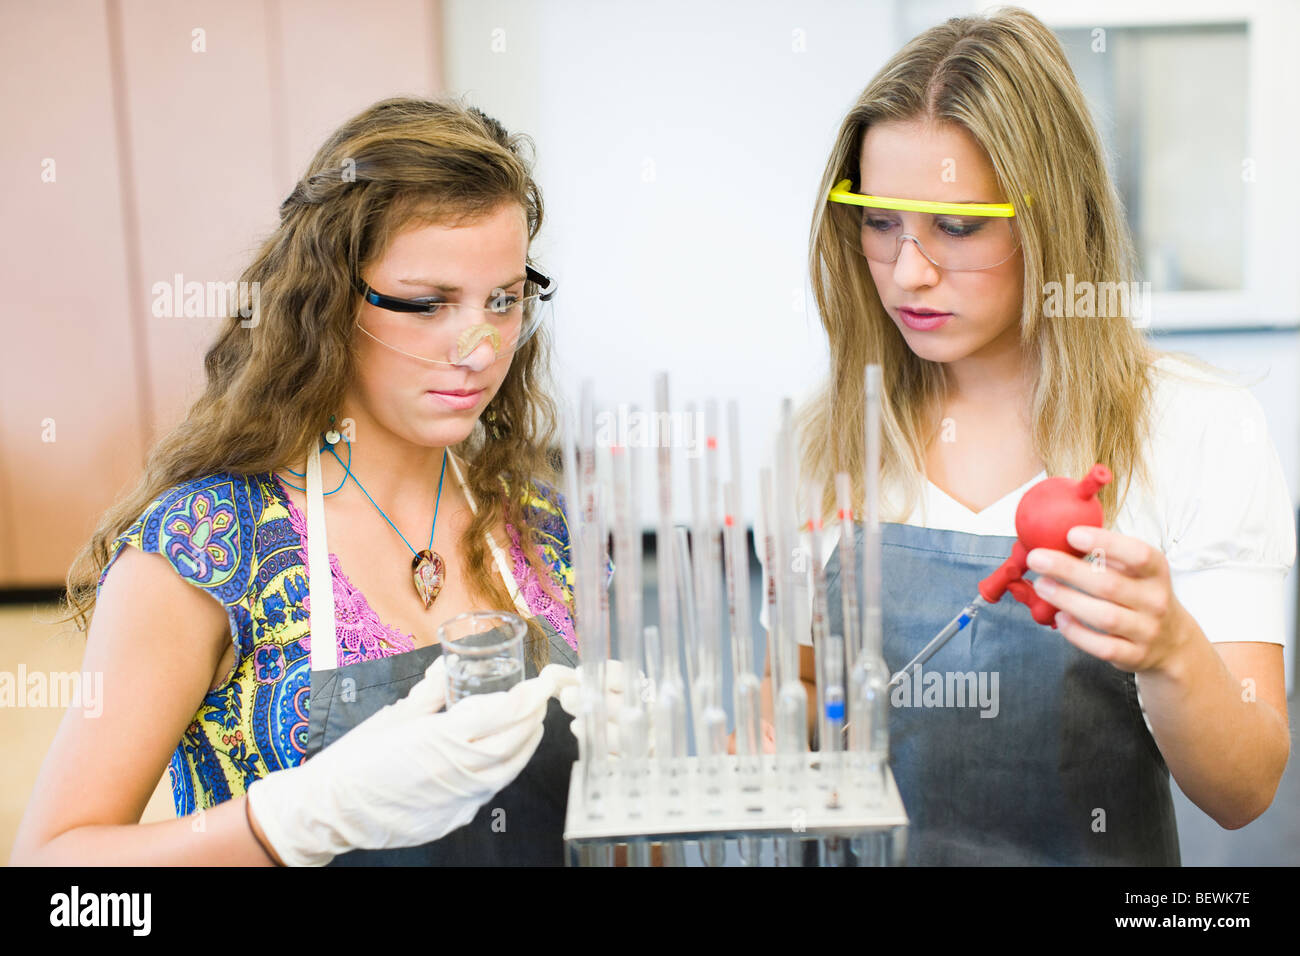 Students doing scientific experiment in a laboratory - Stock Image